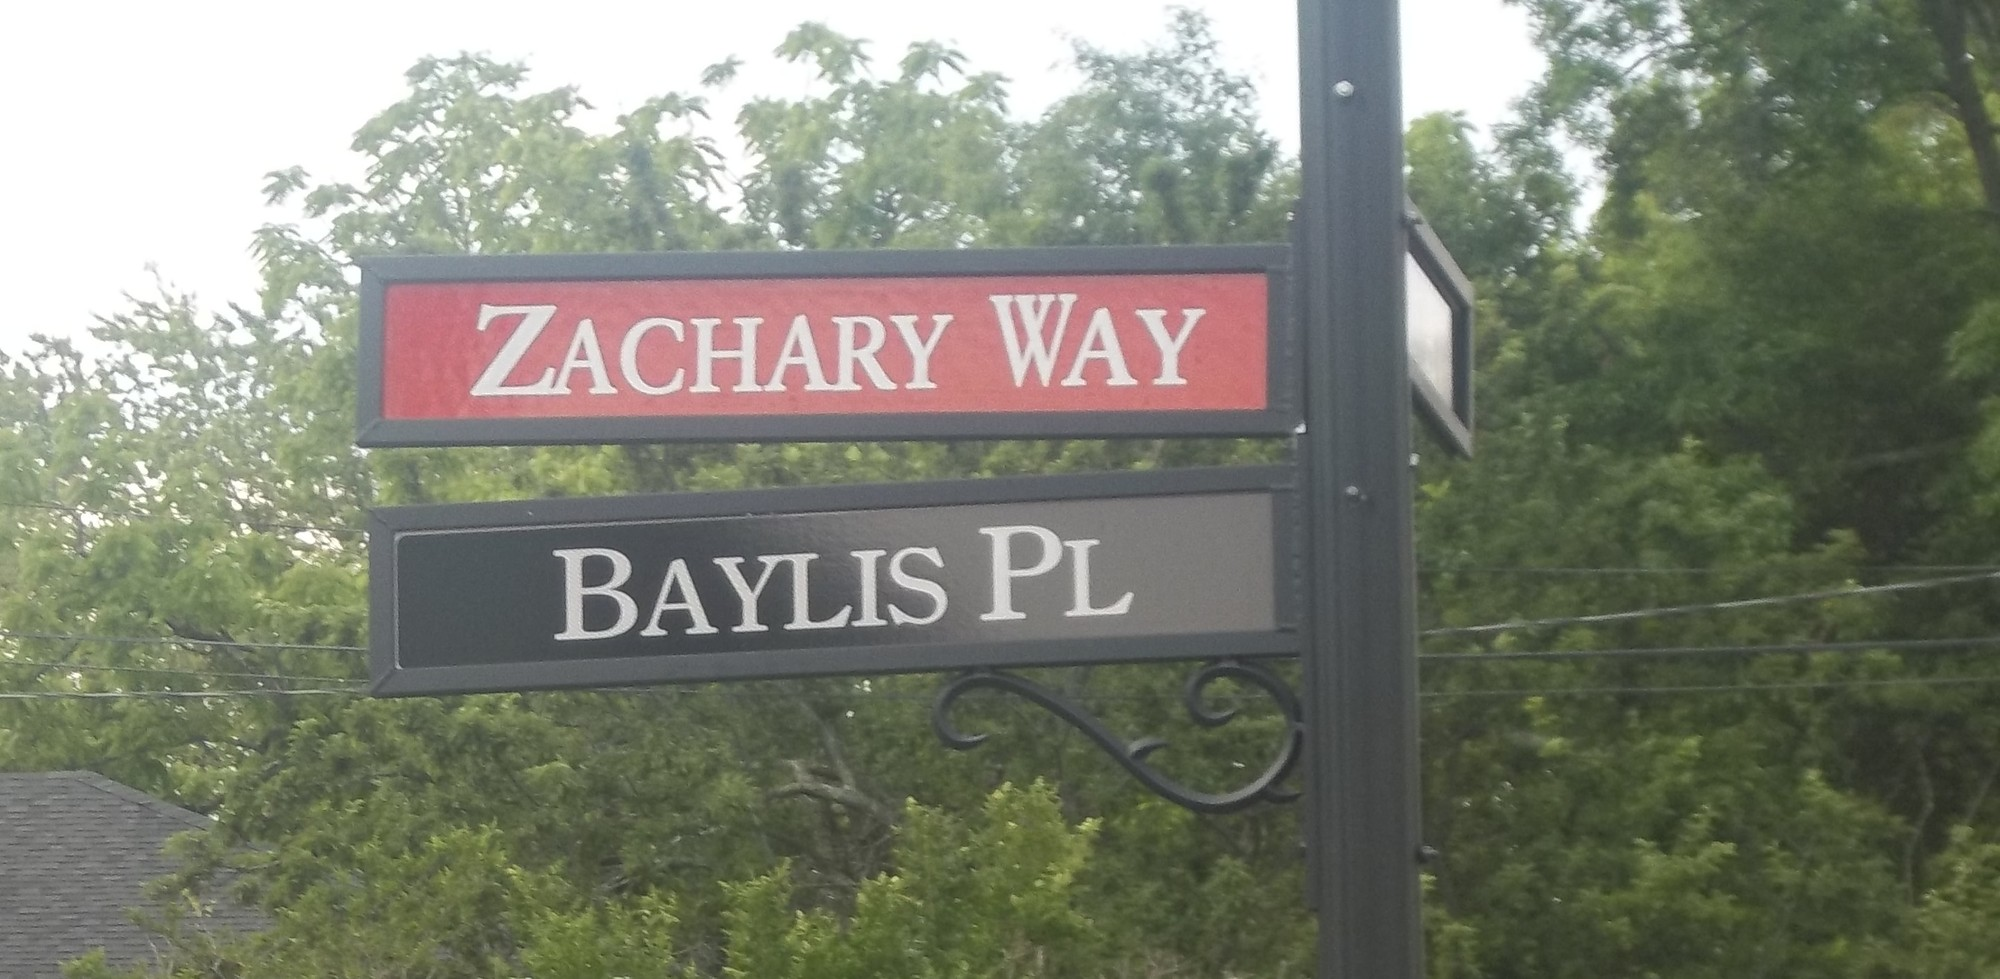 Zachary Way is located across the street from Lynbrook South Middle School, where Zachary attended as a sixth grader.